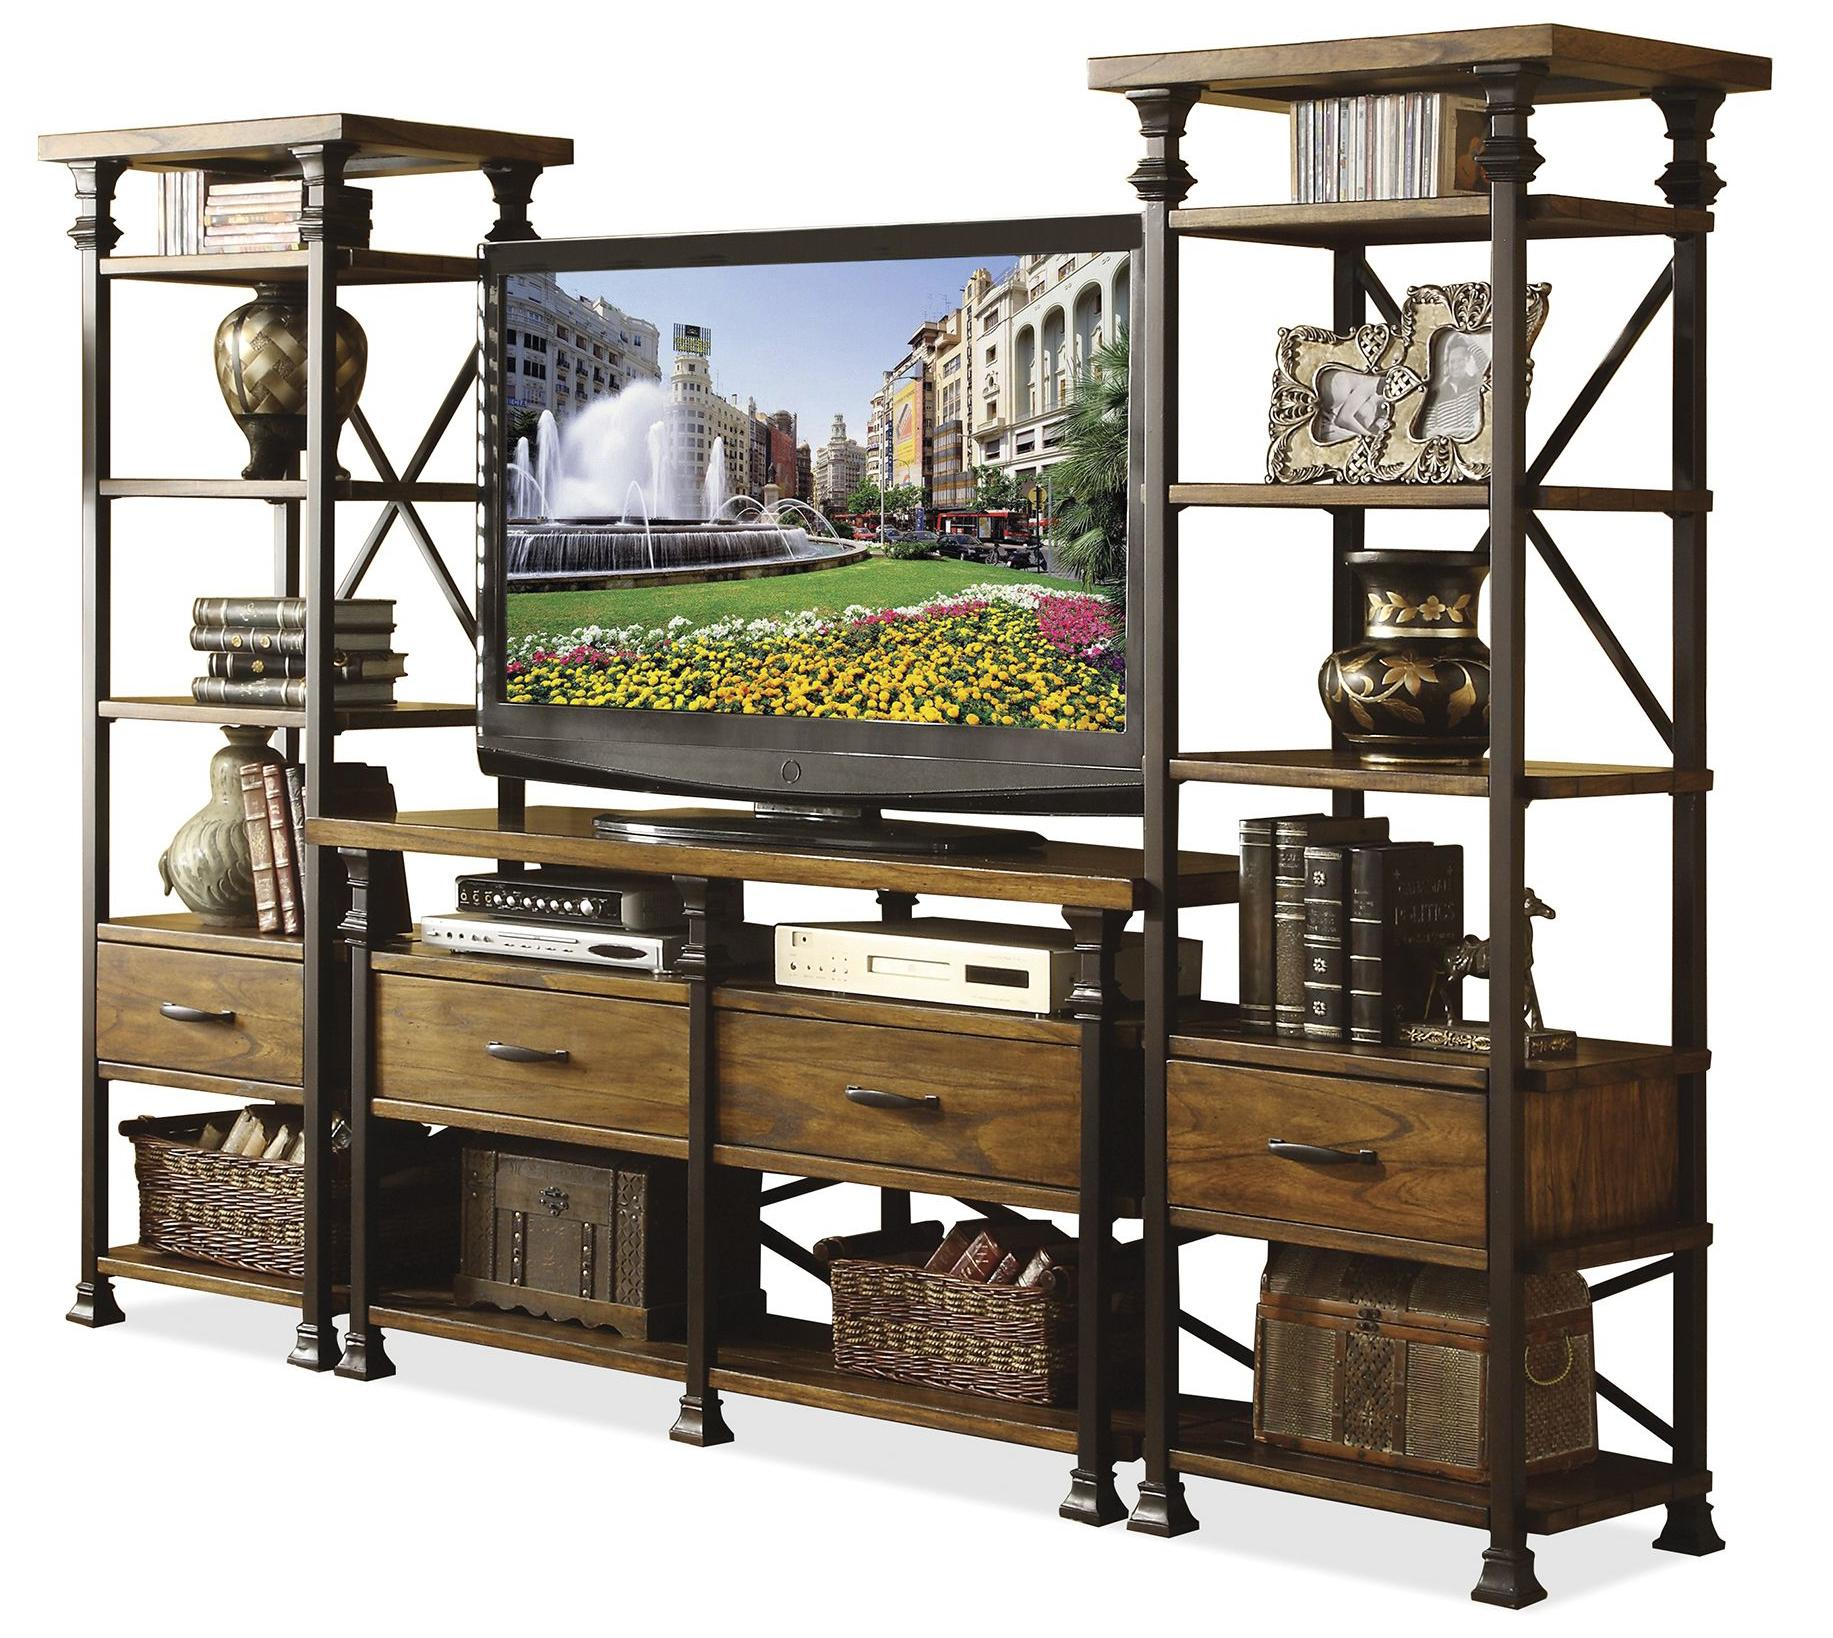 Riverside Furniture Lennox Street Console Table & Etagere Set - Item Number: 5615+2x5617+18